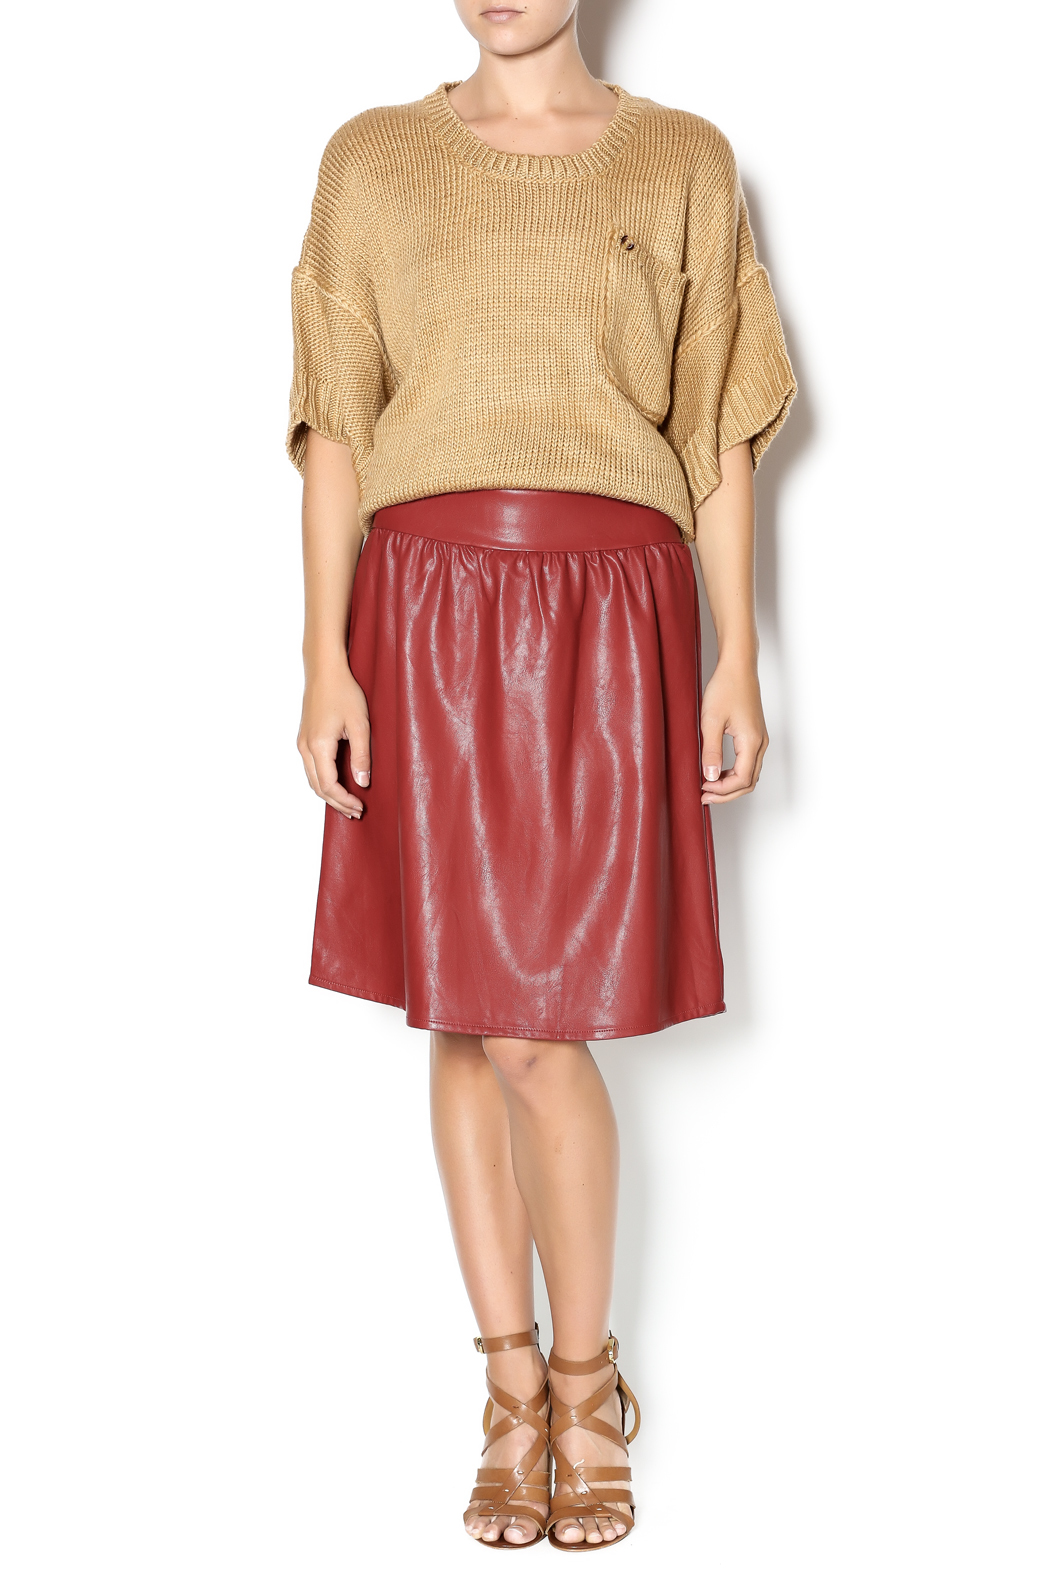 junee Faux Leather Skirt - Front Full Image